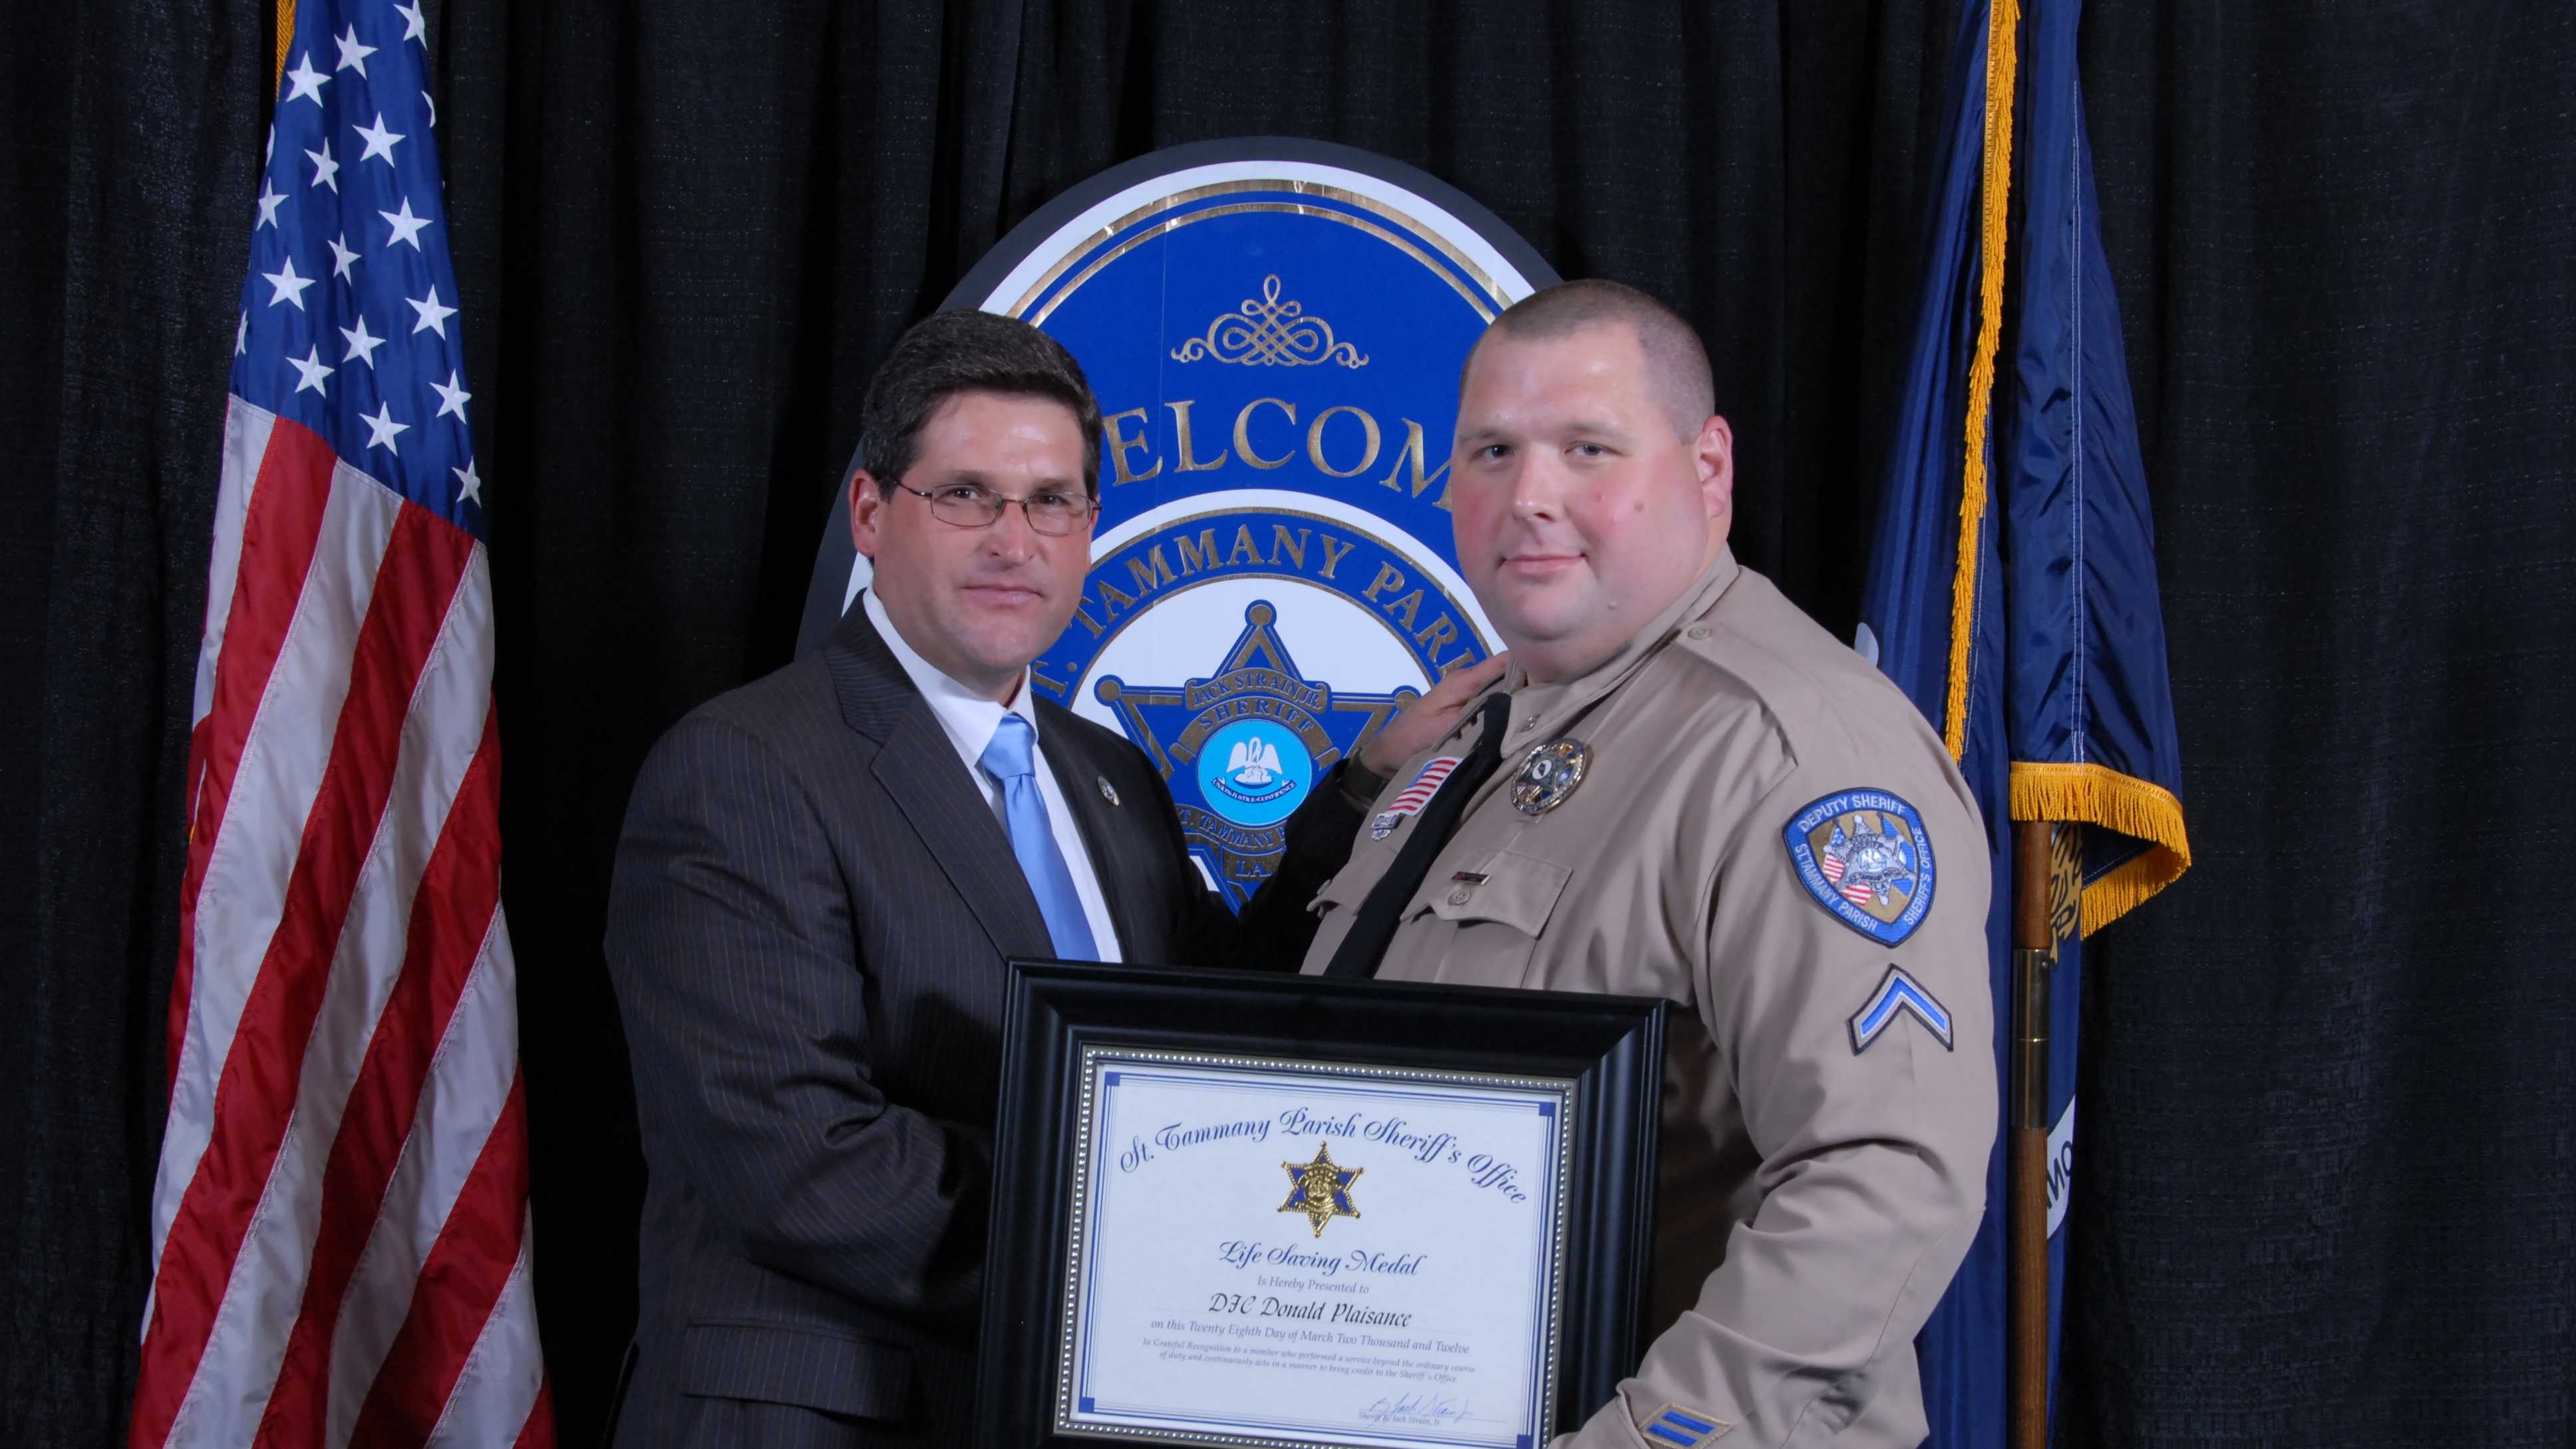 St. Tammany Parish Sheriff Jack Strain and Deputy First Class Donald A. Plaisance, Jr.DFC Donald Plaisance with Sheriff Strain after receiving our Life Saving Award in 2012. During that incident (on Christmas morning, 2011) DFC Plaisance performed CPR on a man who had no vital signs and resuscitated him.